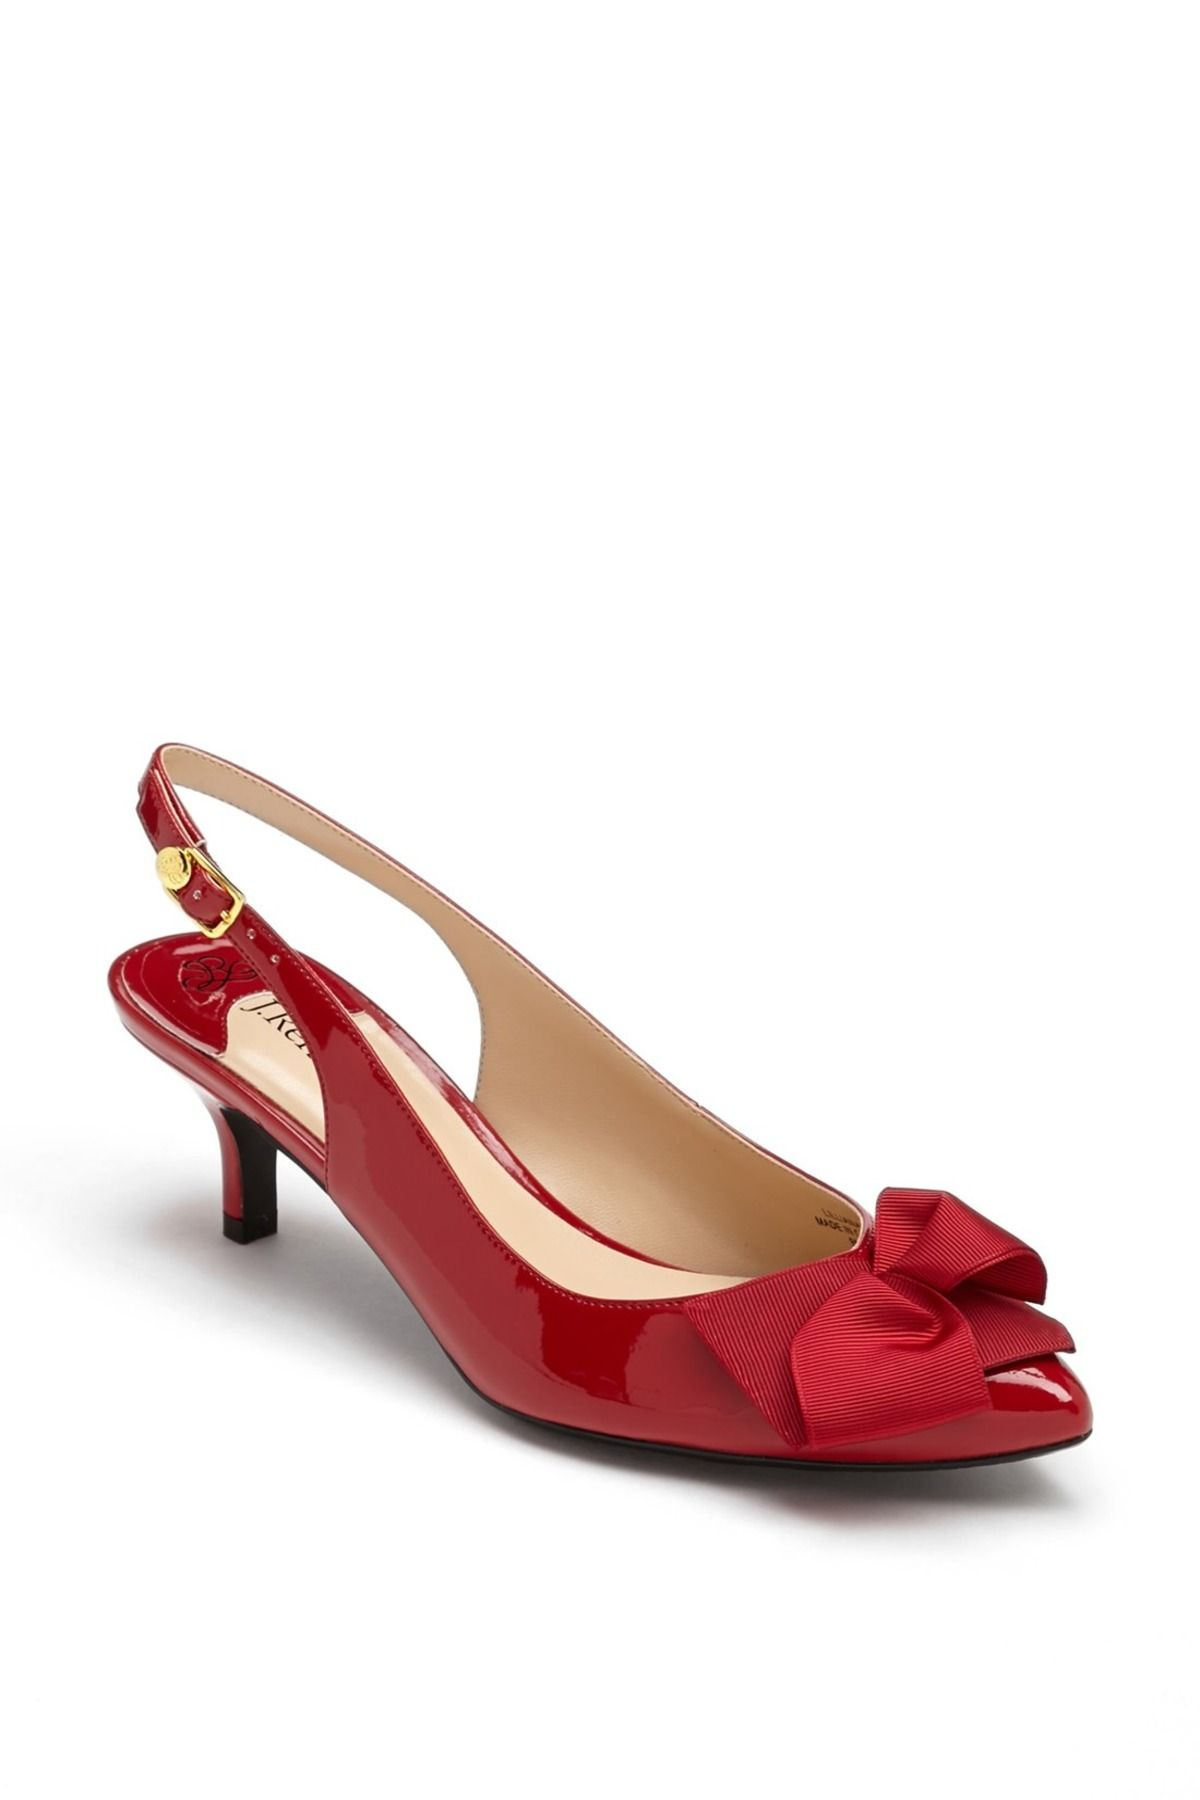 Feminine ribbon flirts at the toe of a charming slingback pump